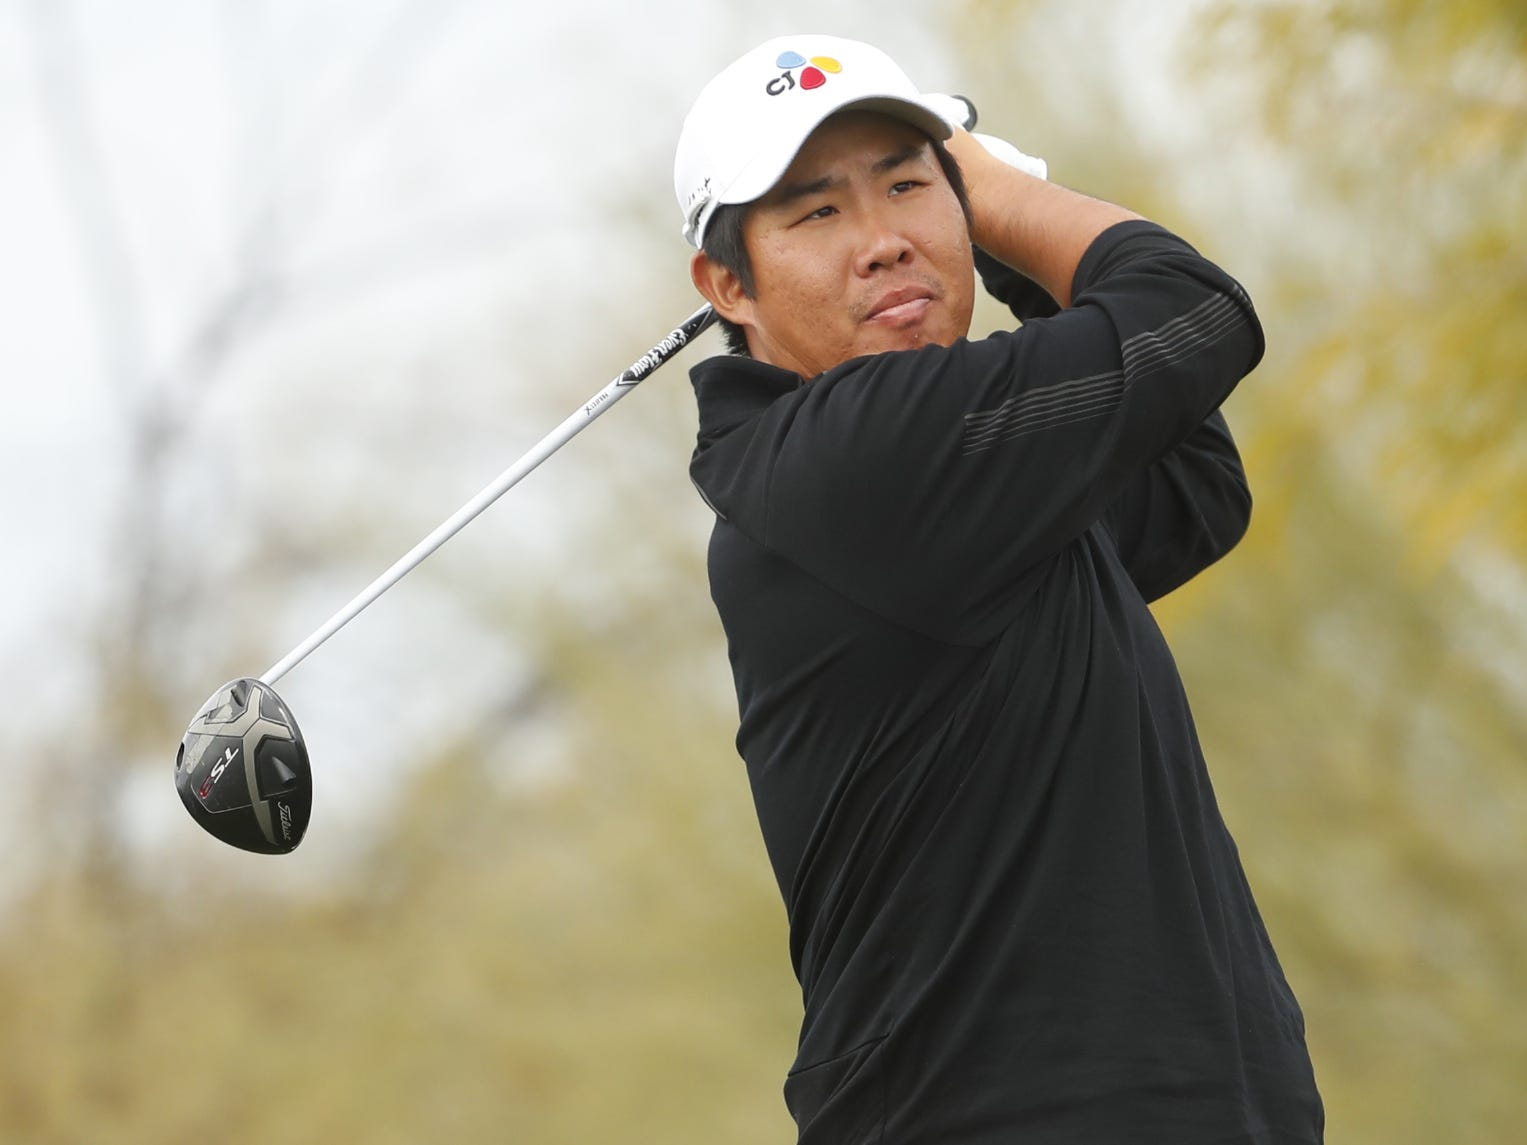 Byeong Hun An tees off on the 8th hole during the third round of the Waste Management Phoenix Open at TPC Scottsdale in Scottsdale, Ariz. on February 2, 2019.